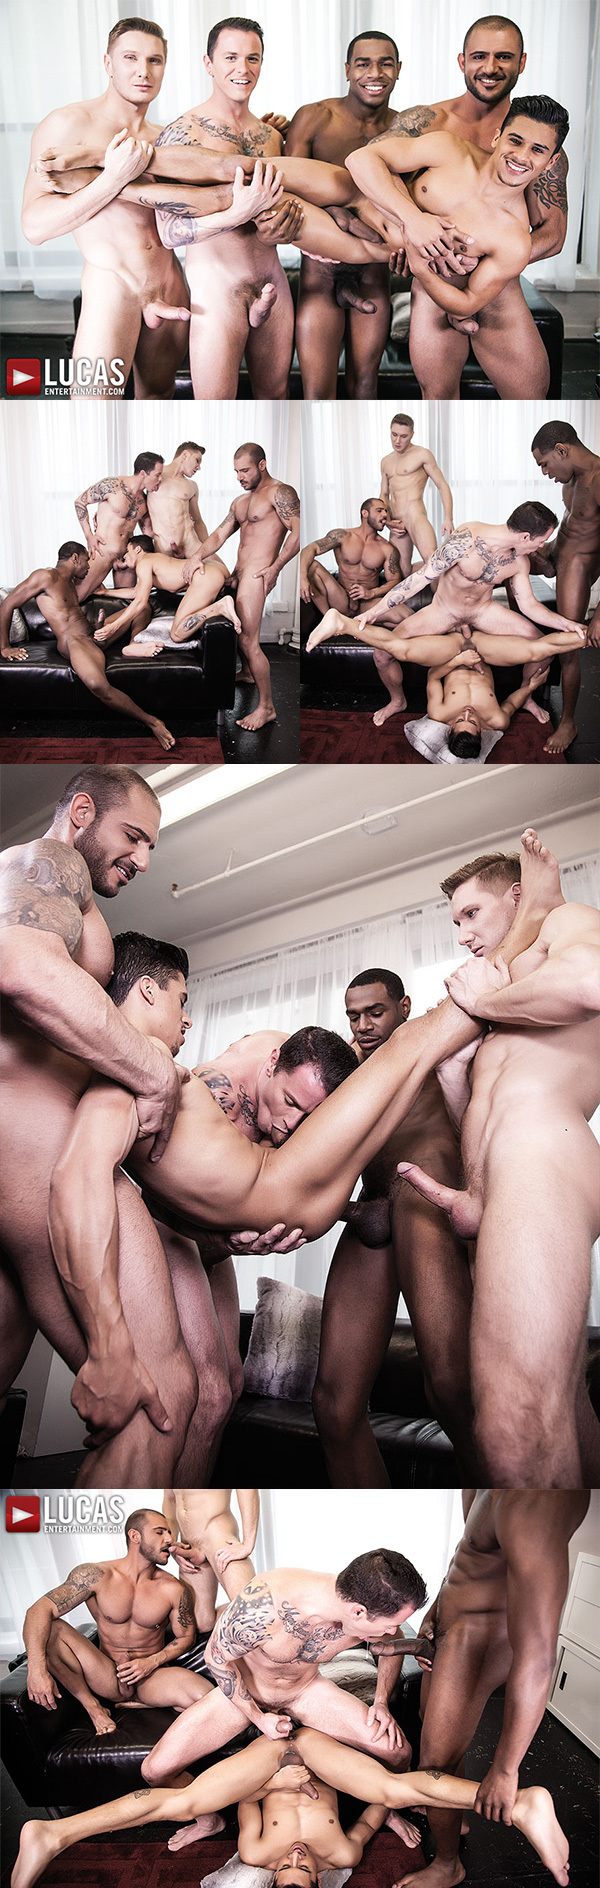 Magic Wood Debuts His Monster Cock in 5-Man Gang Bang